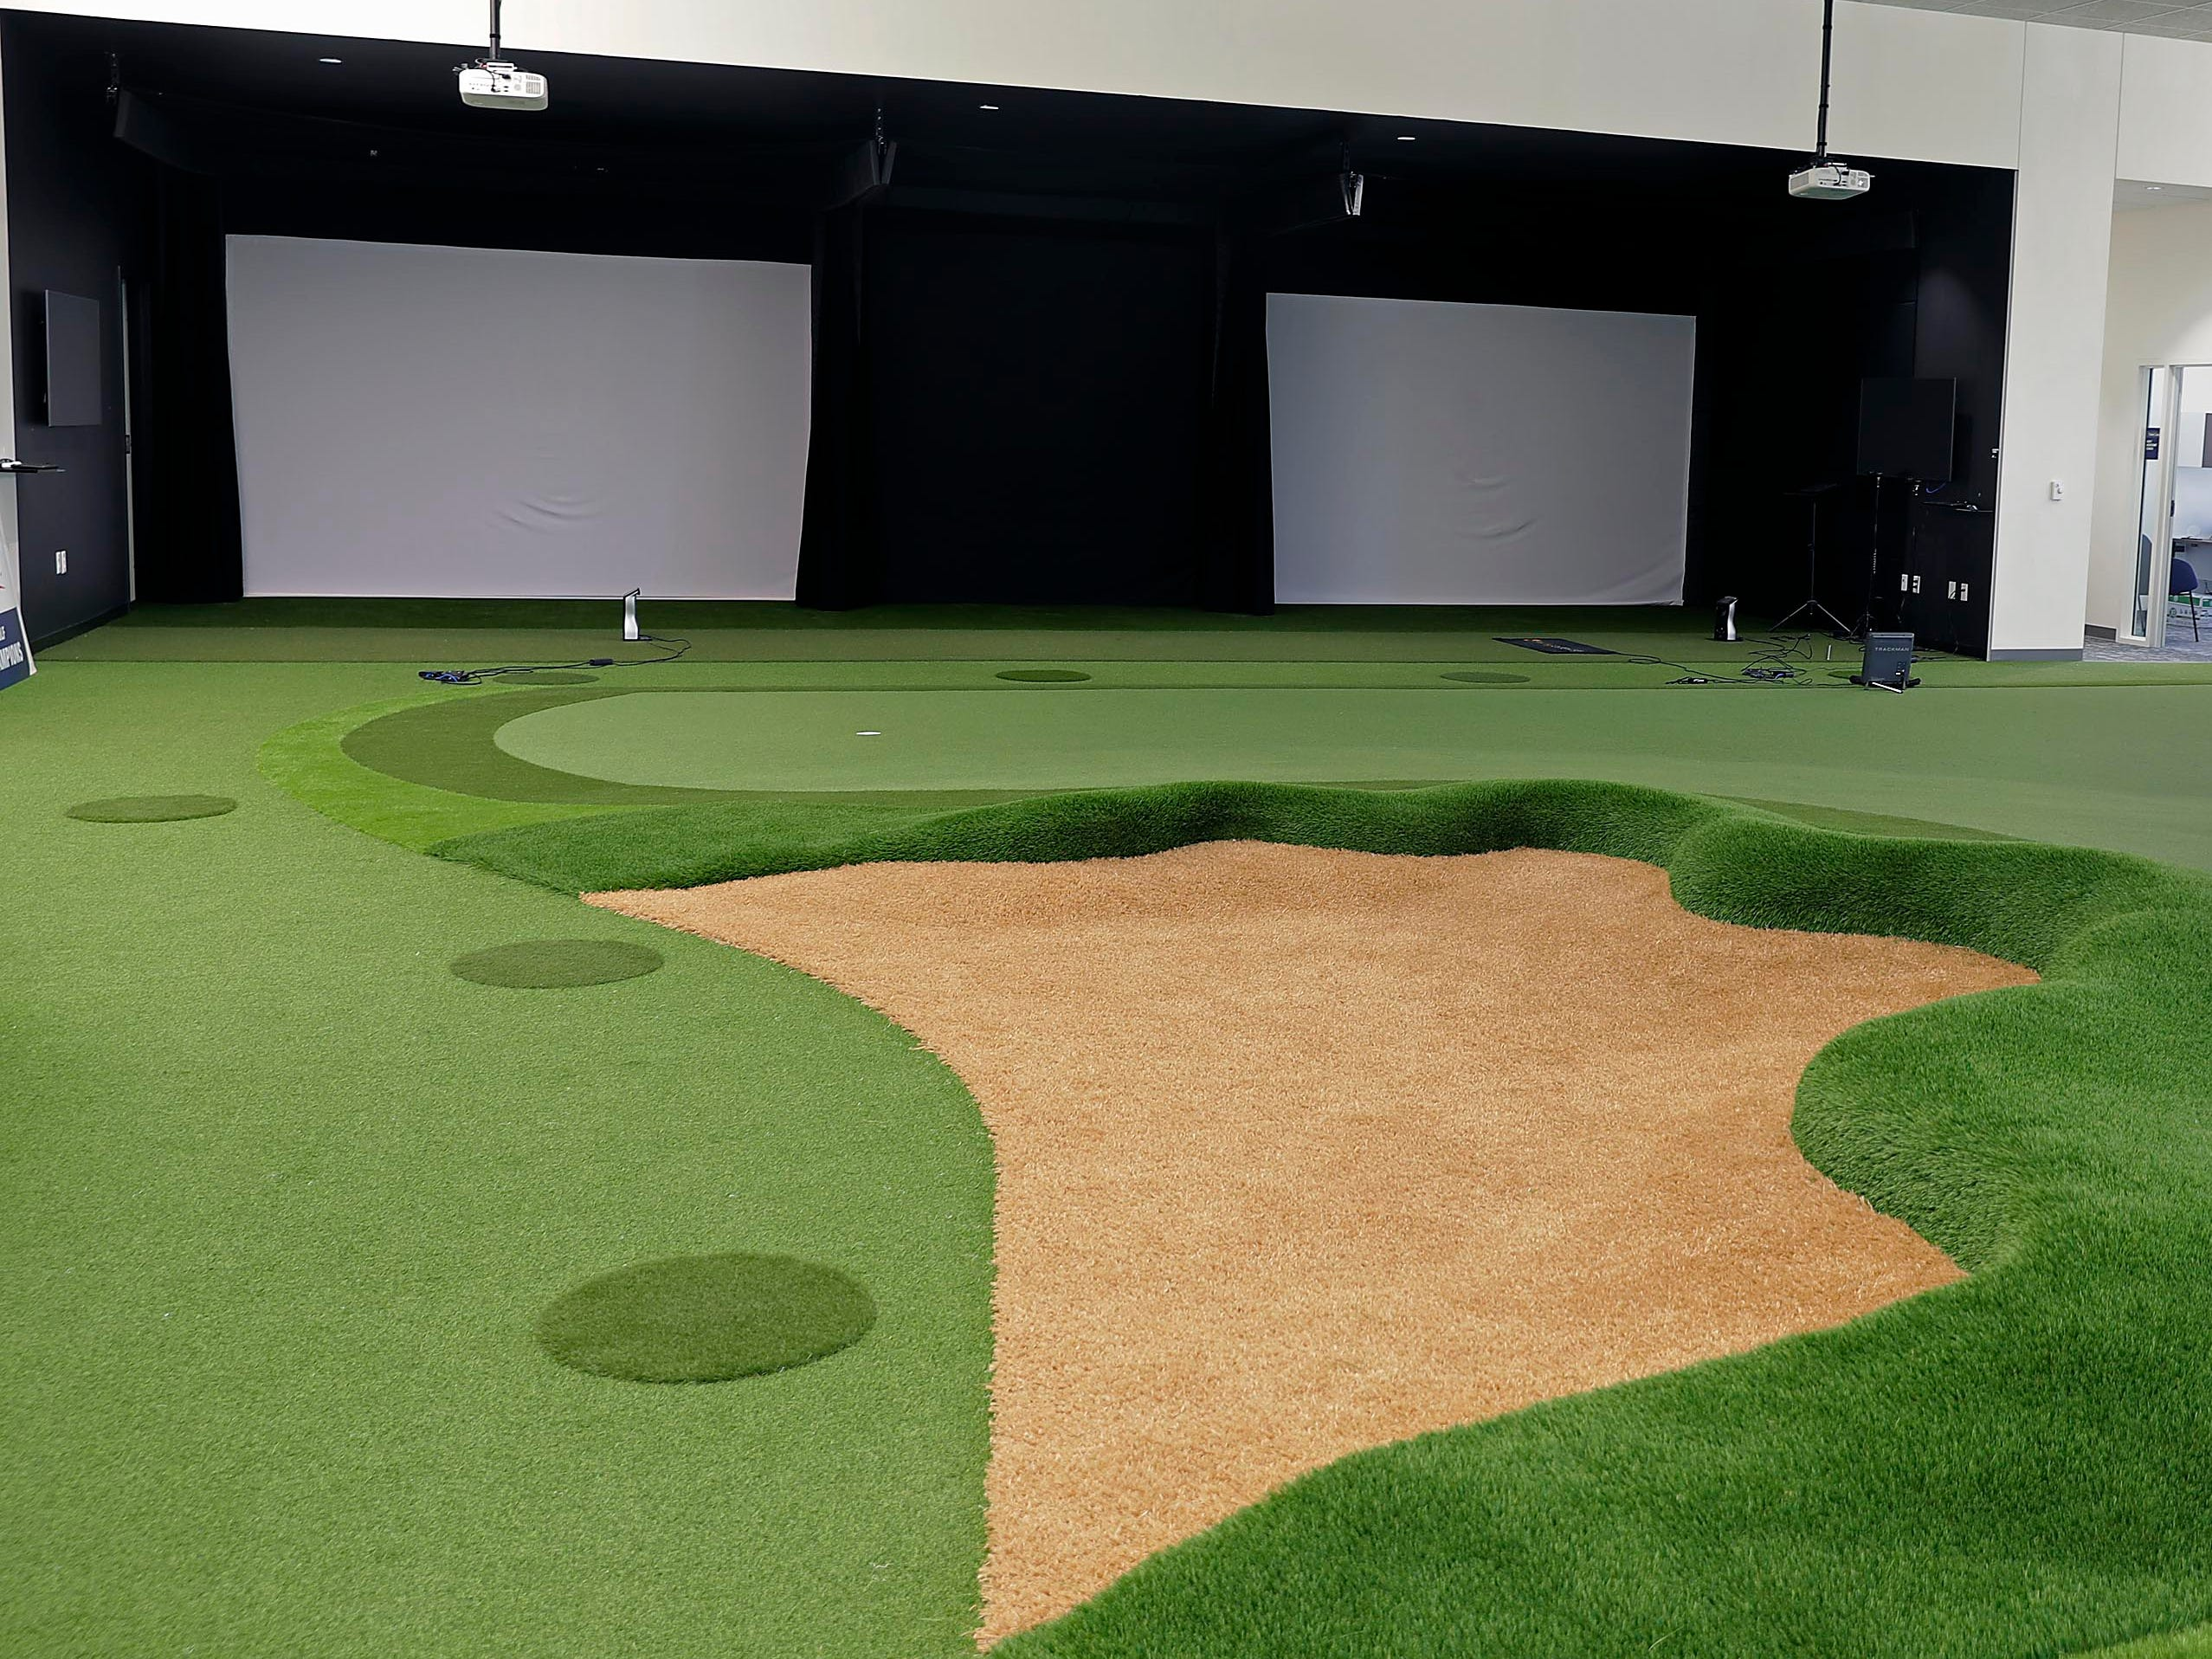 The golf team has a year-round putting green and swing analysis equipment to help players improve.